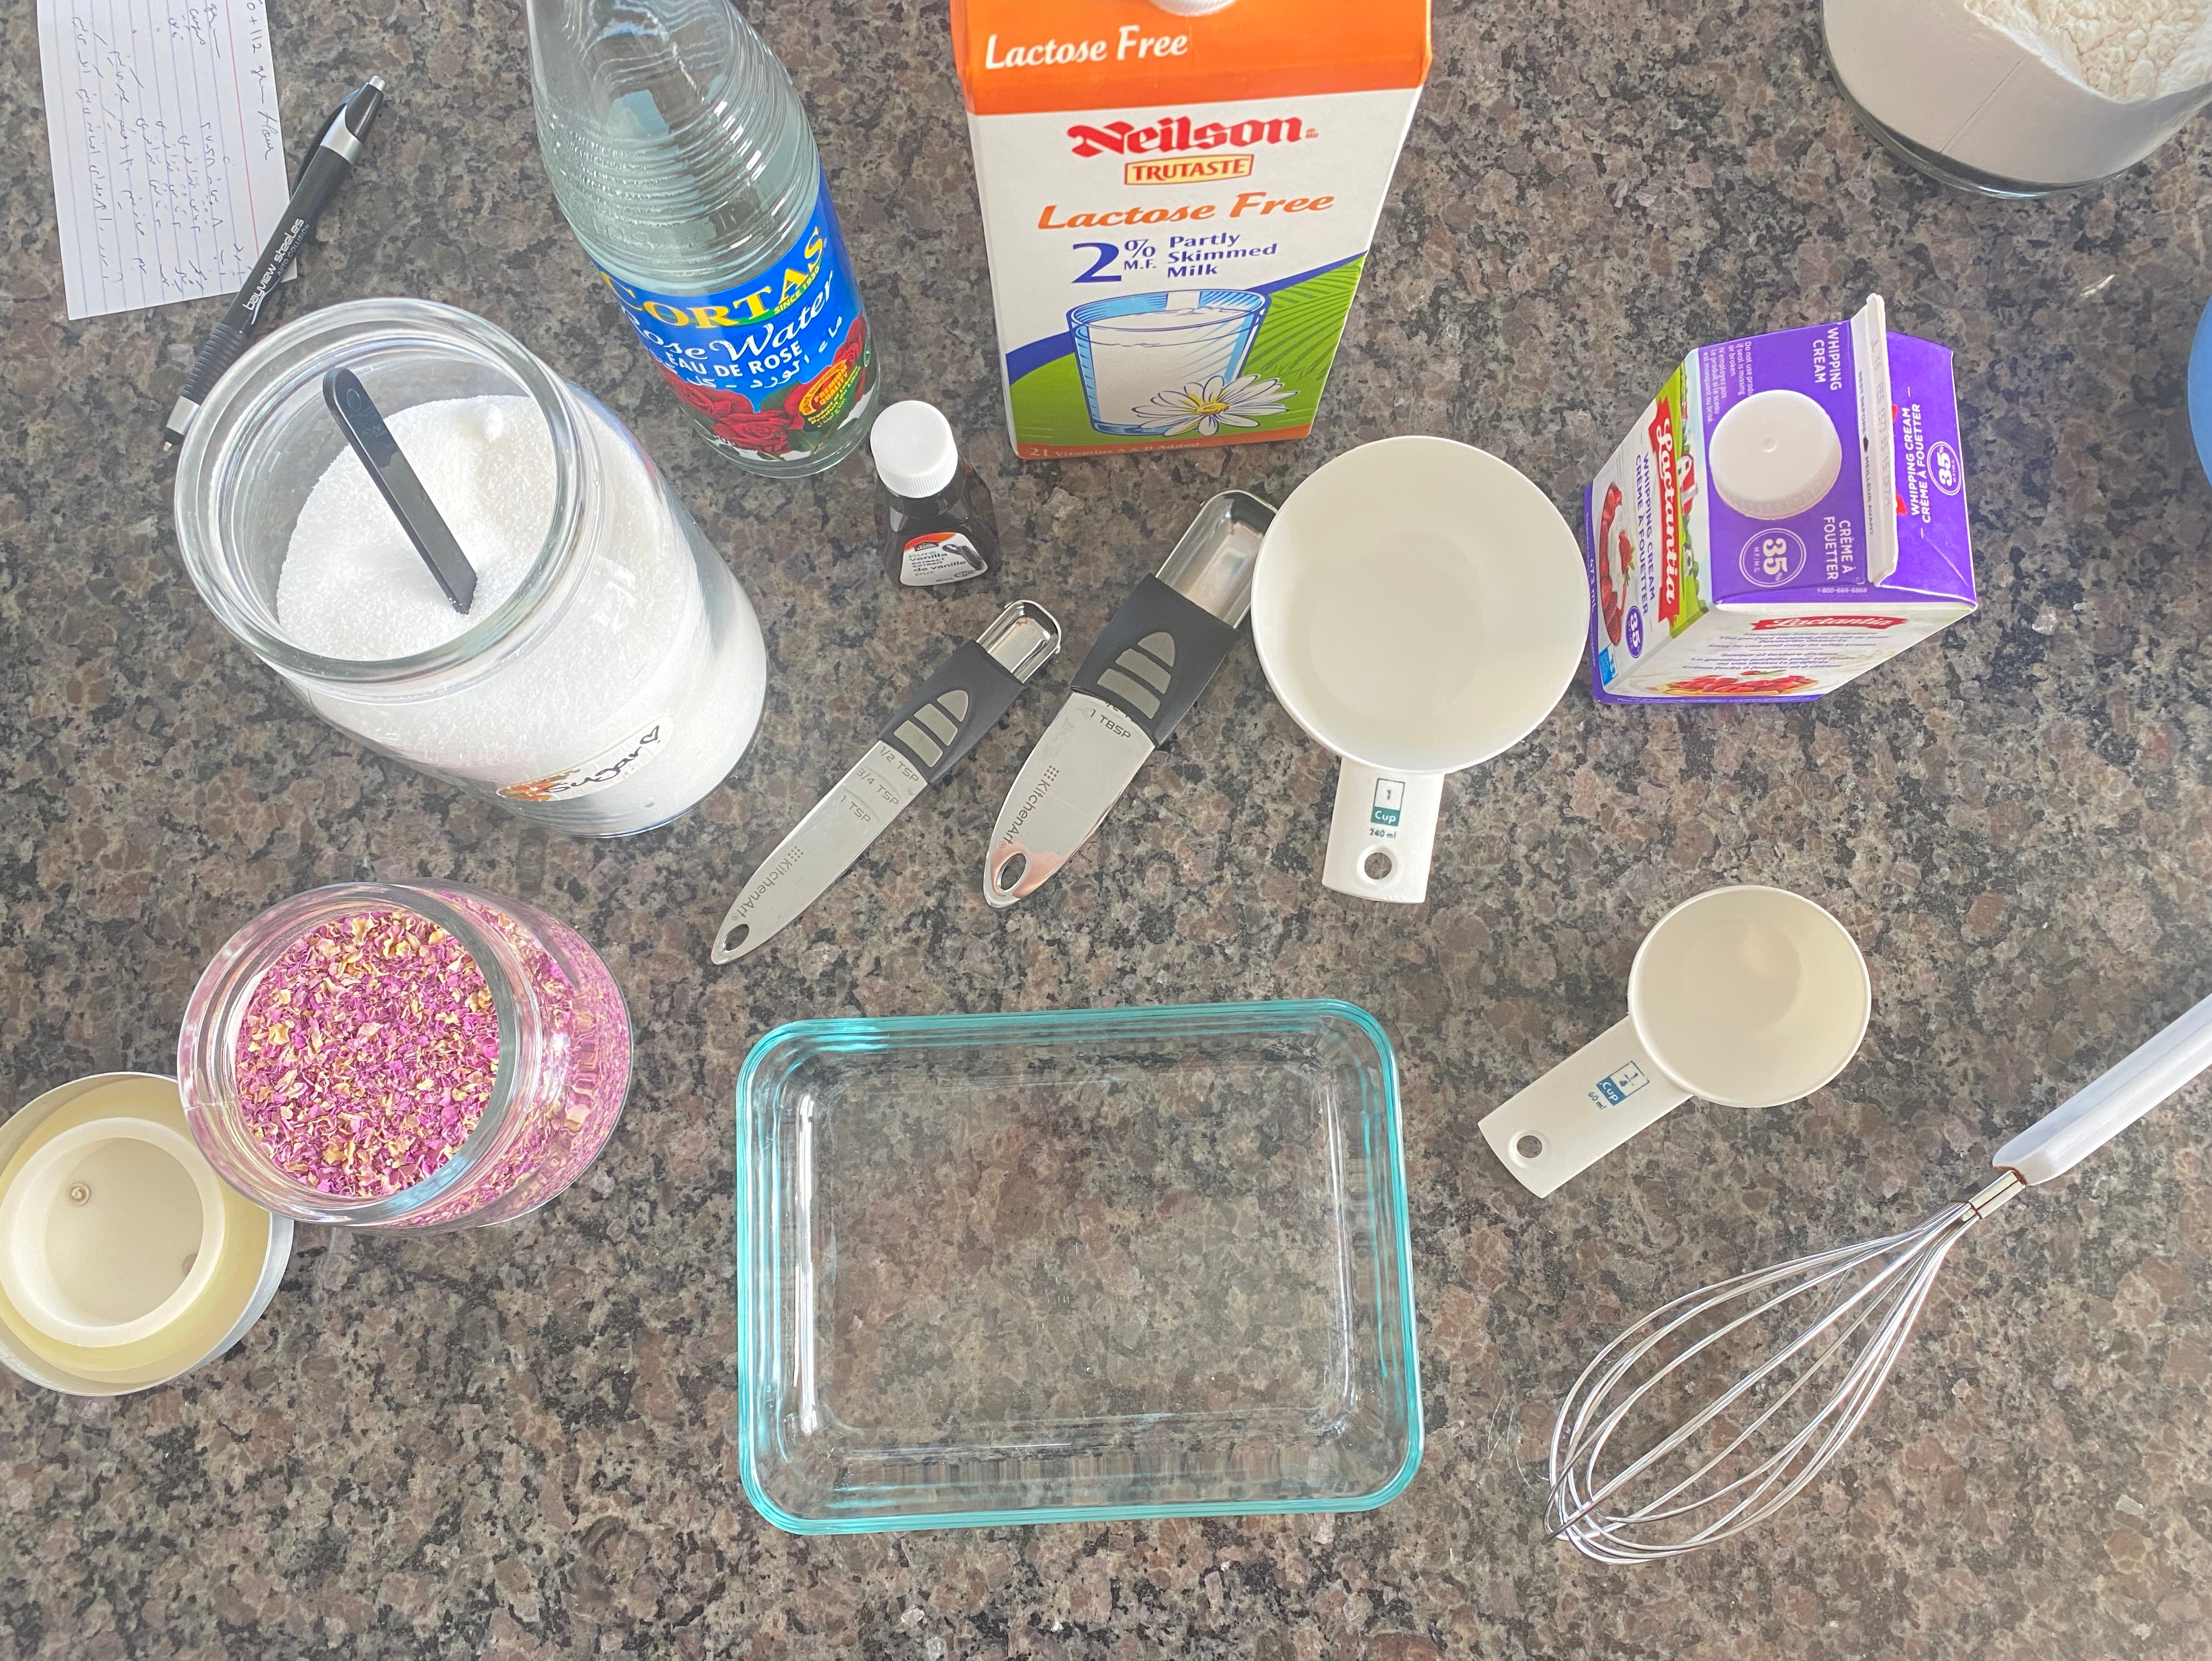 Tools and ingredients for making Rose water ice cream